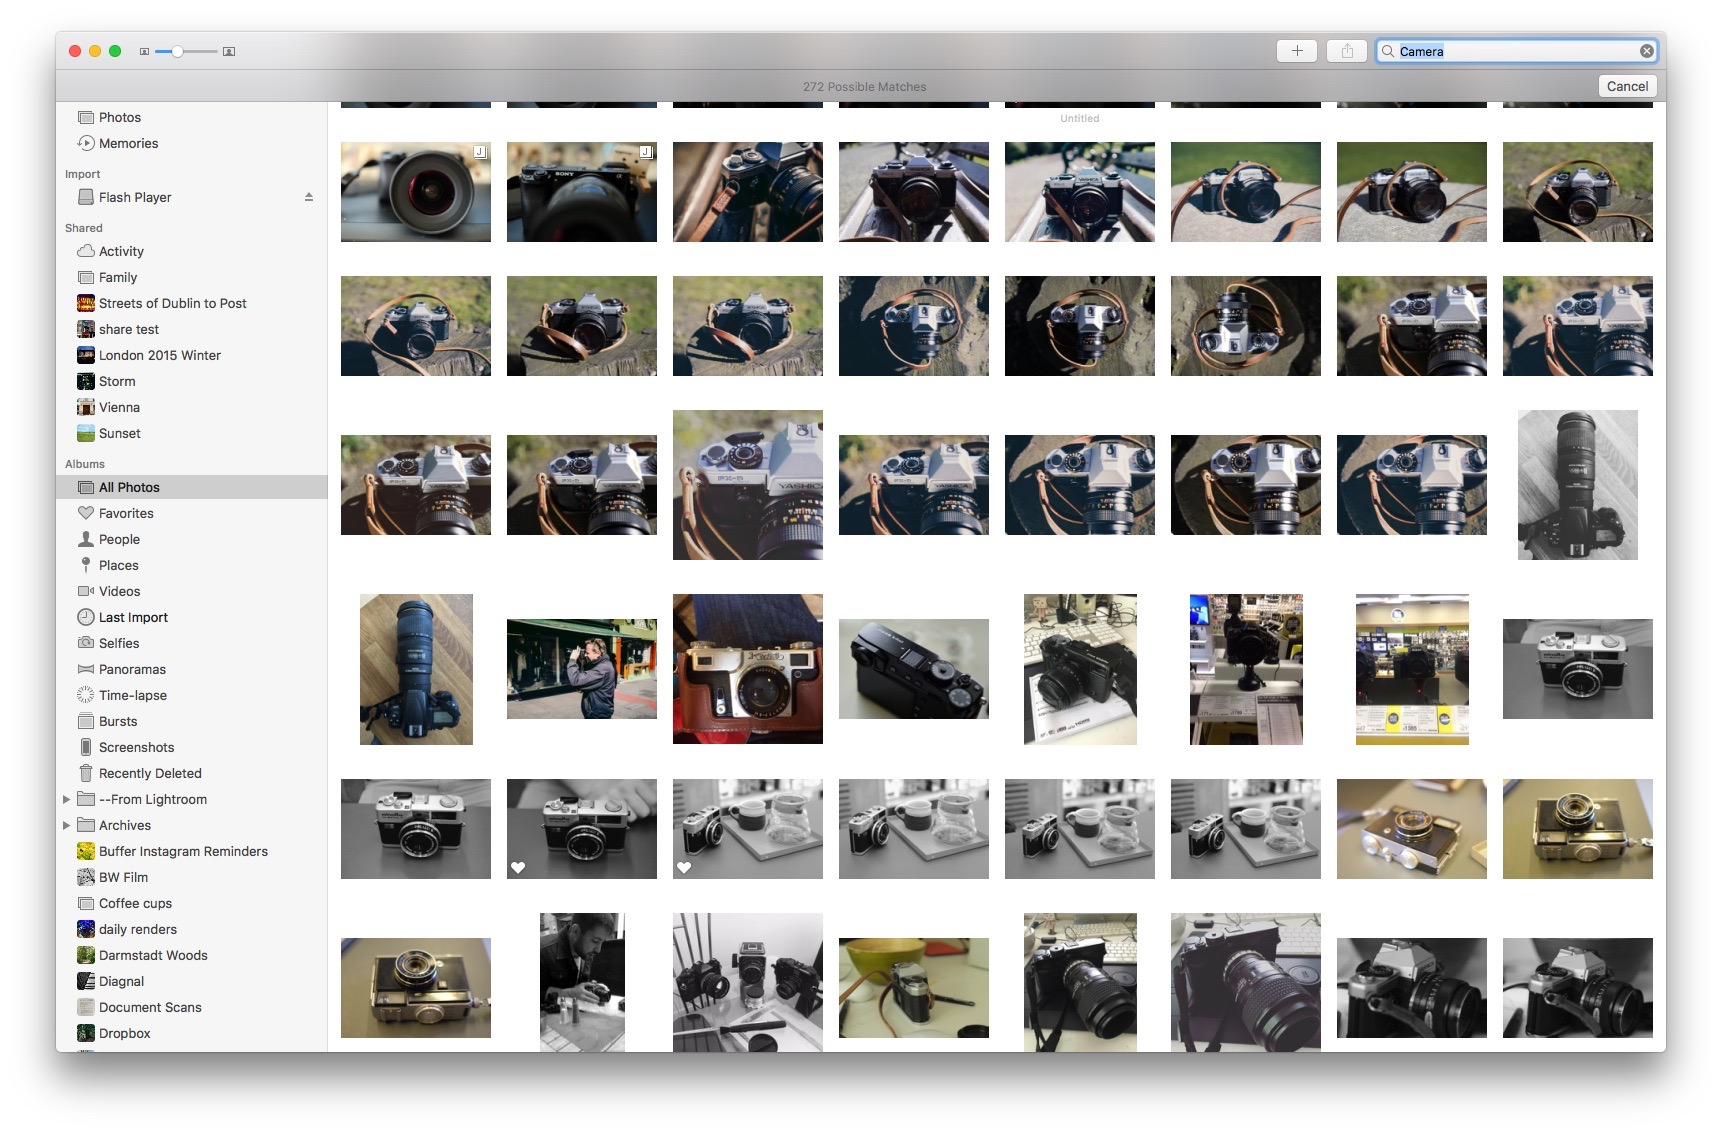 Searching photos for Image contents